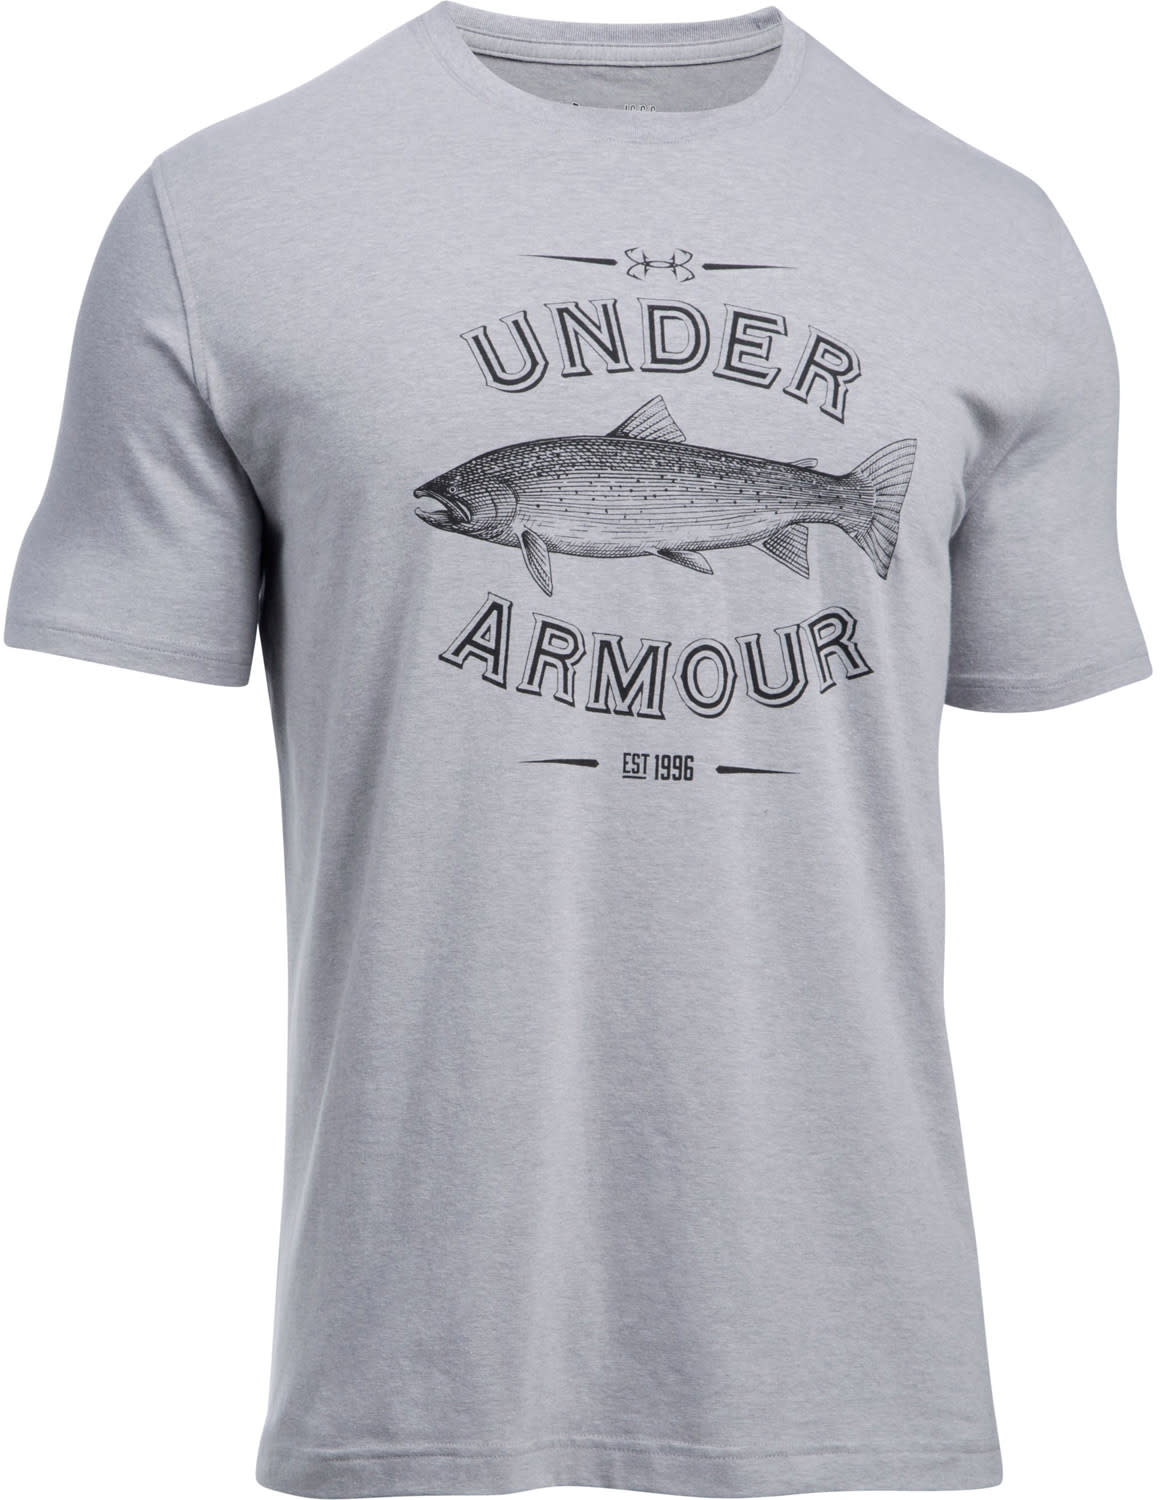 Under Armour Classic Trout T-Shirt ua3ct06tghb17zz-under-armour-t-shirts